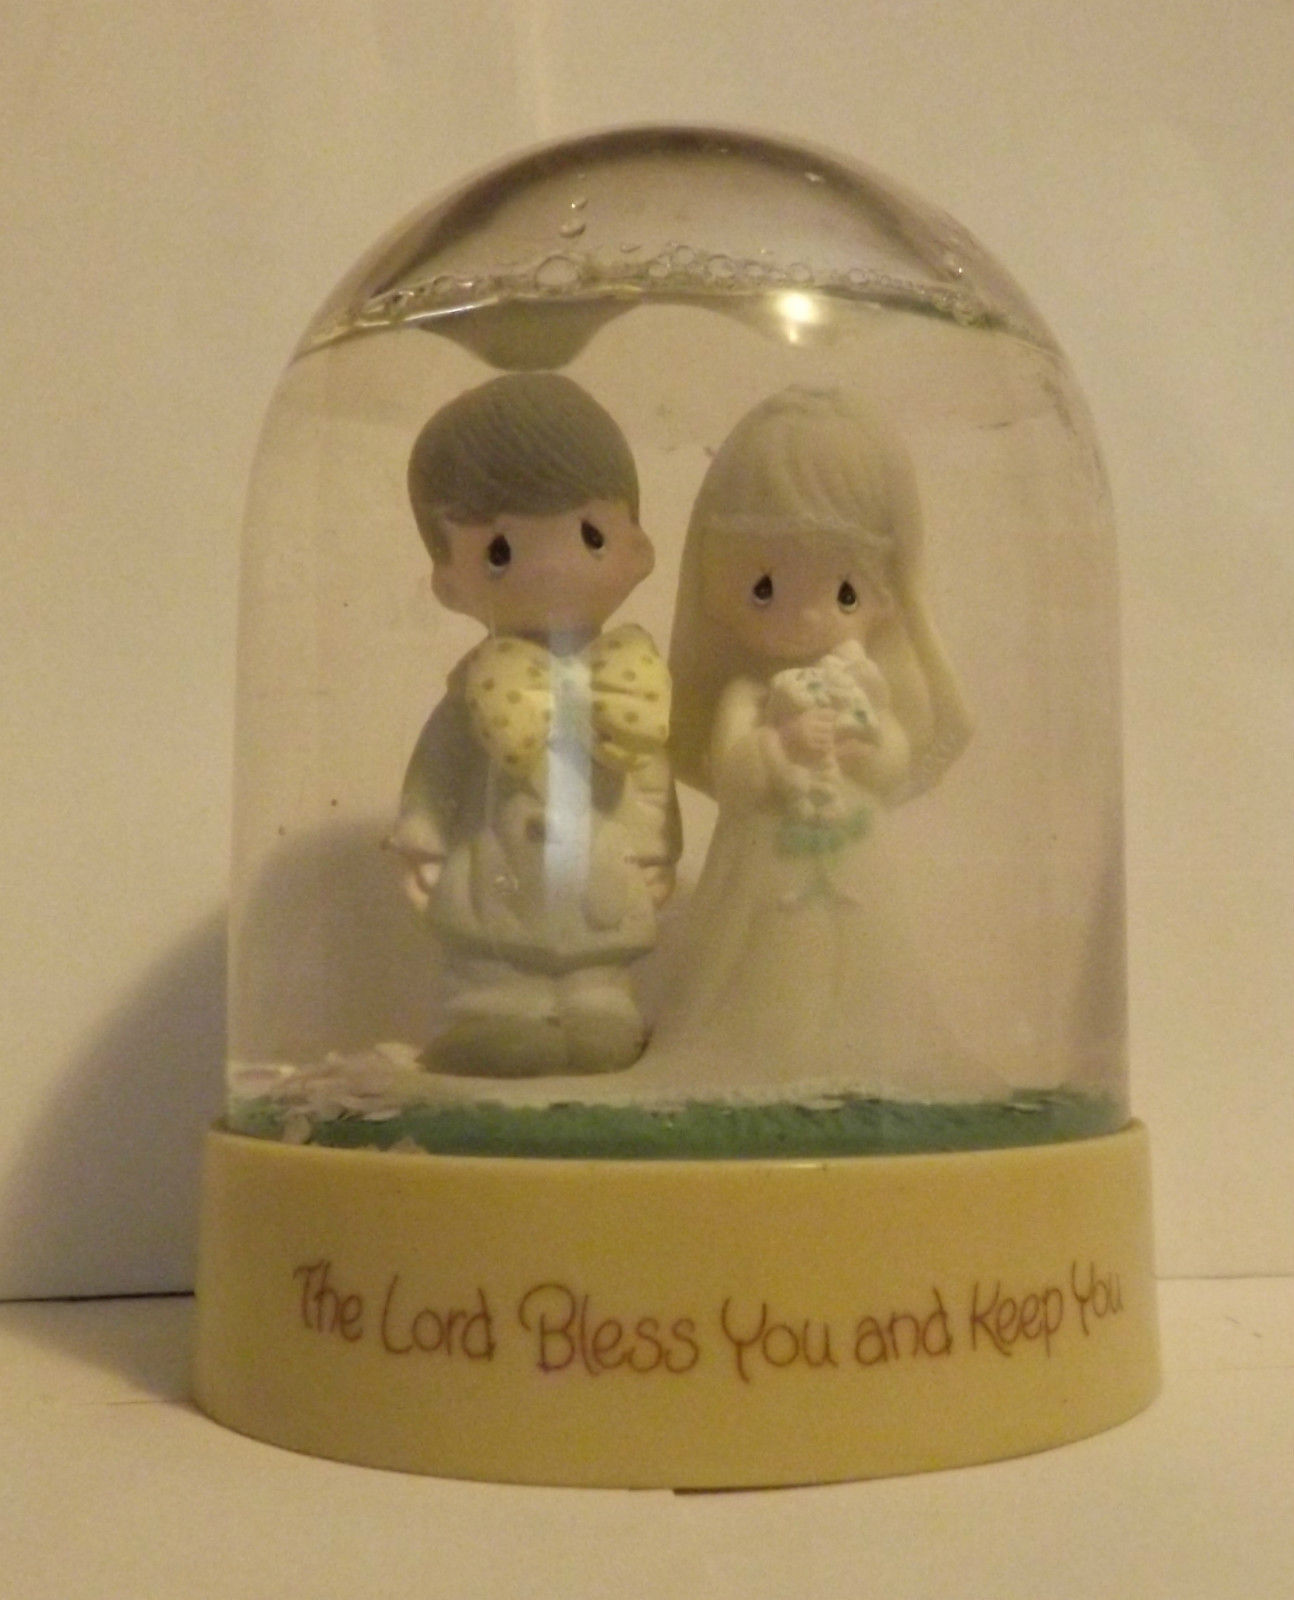 Precious Moments Snow Globe The Lord Bless You and Keep You